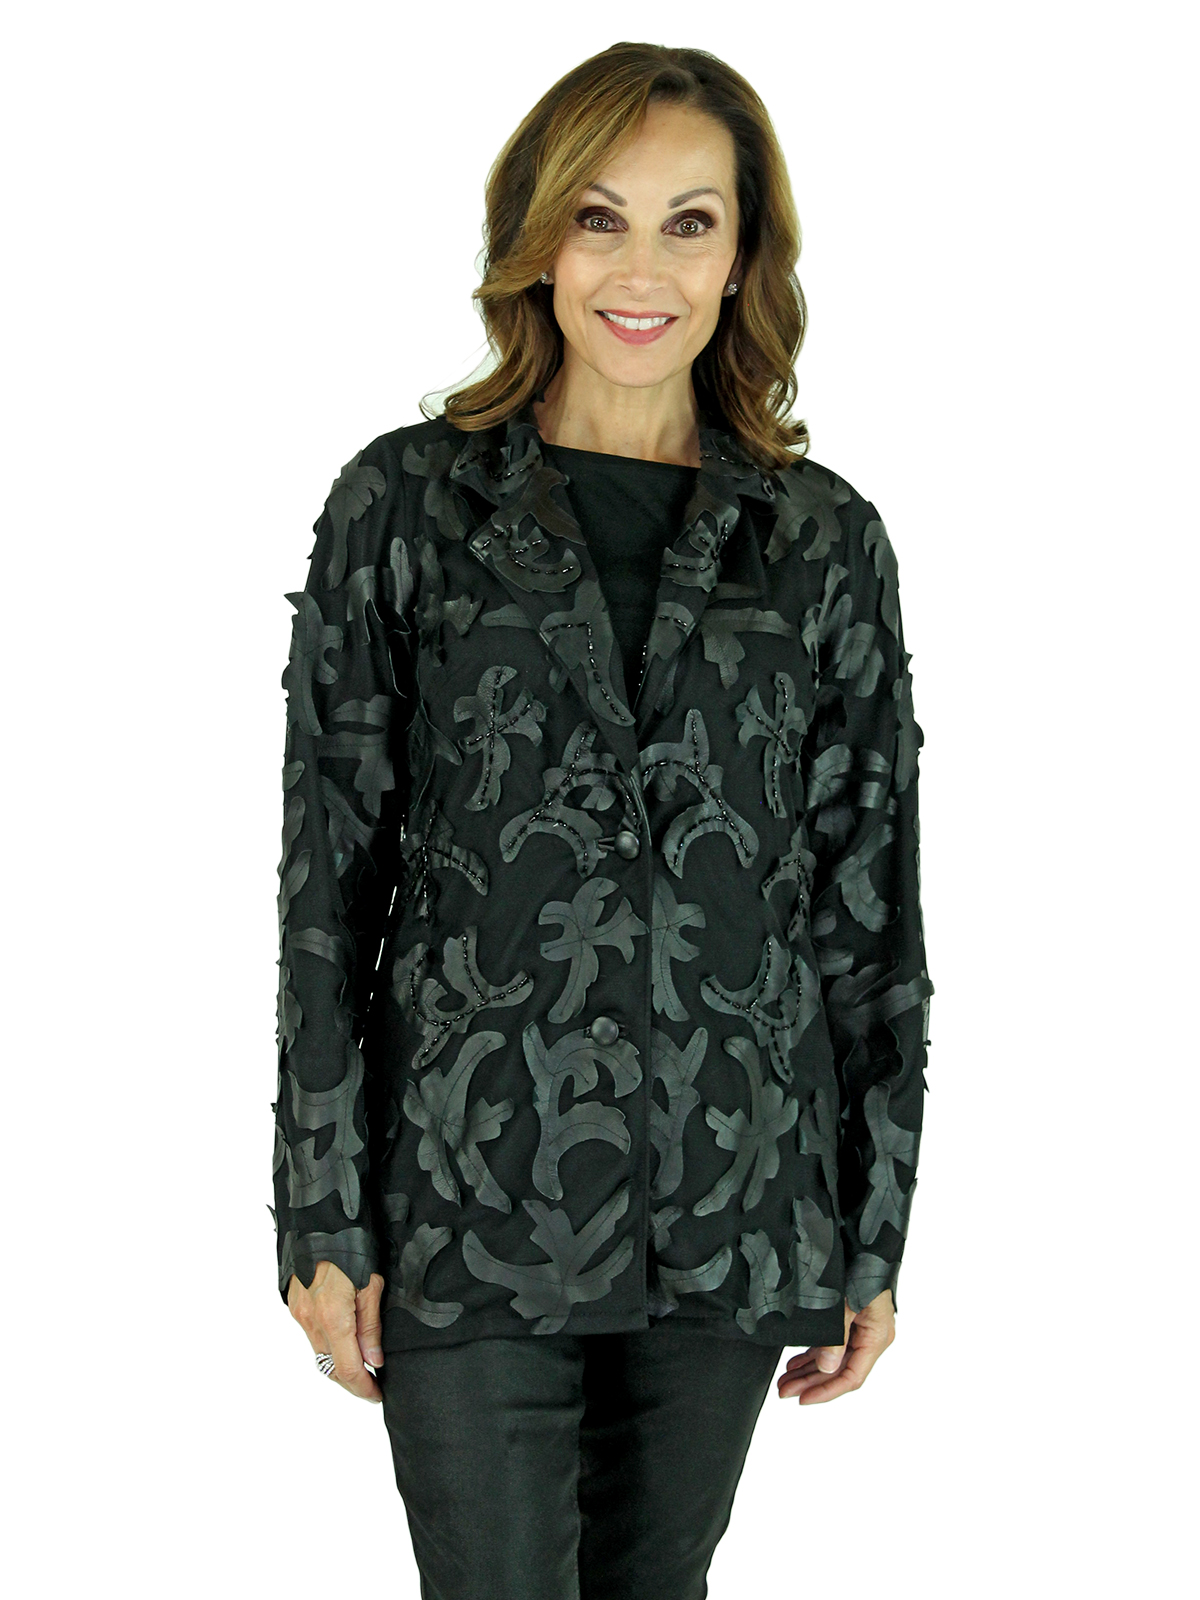 Woman's Black Leather and Black Fabric Fashion Jacket